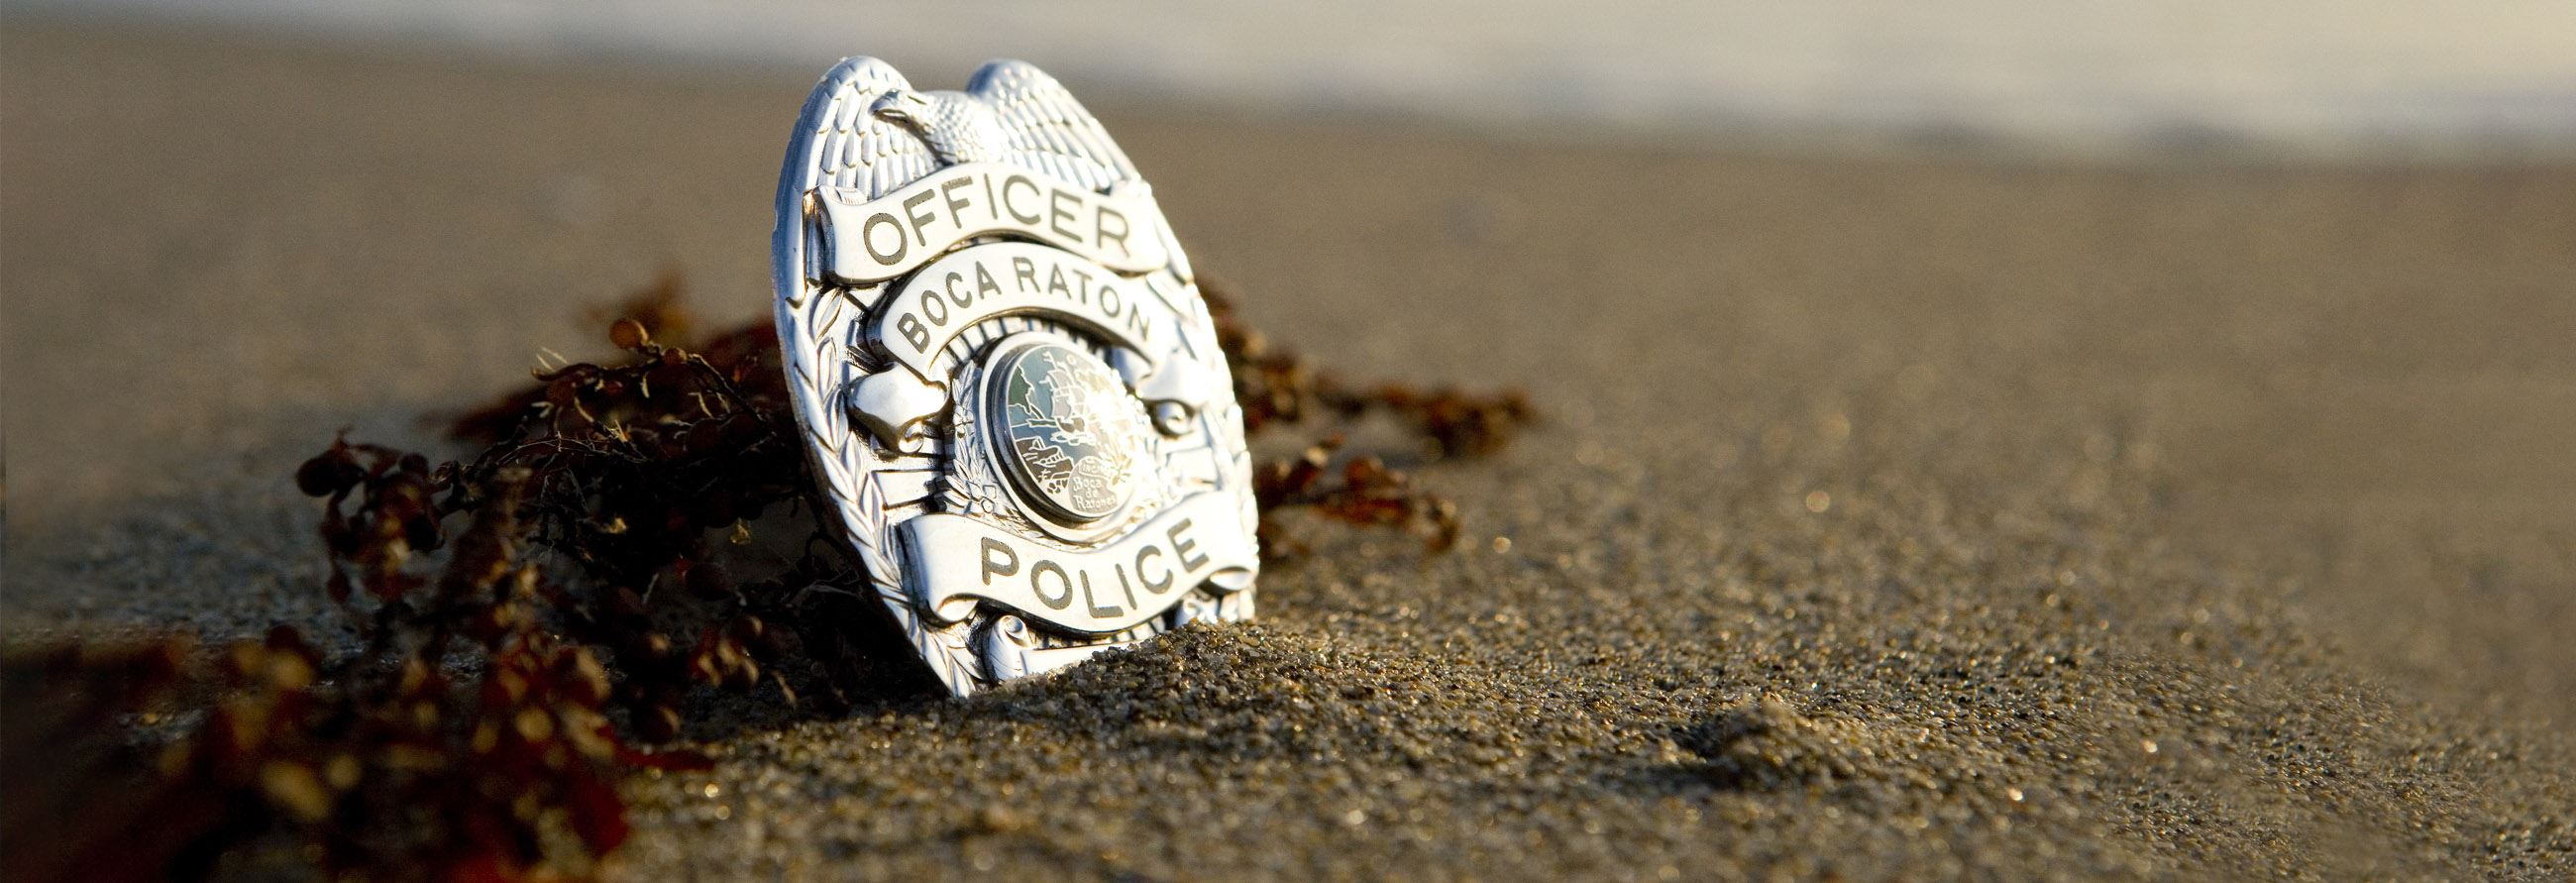 police badge in the sand seaweed